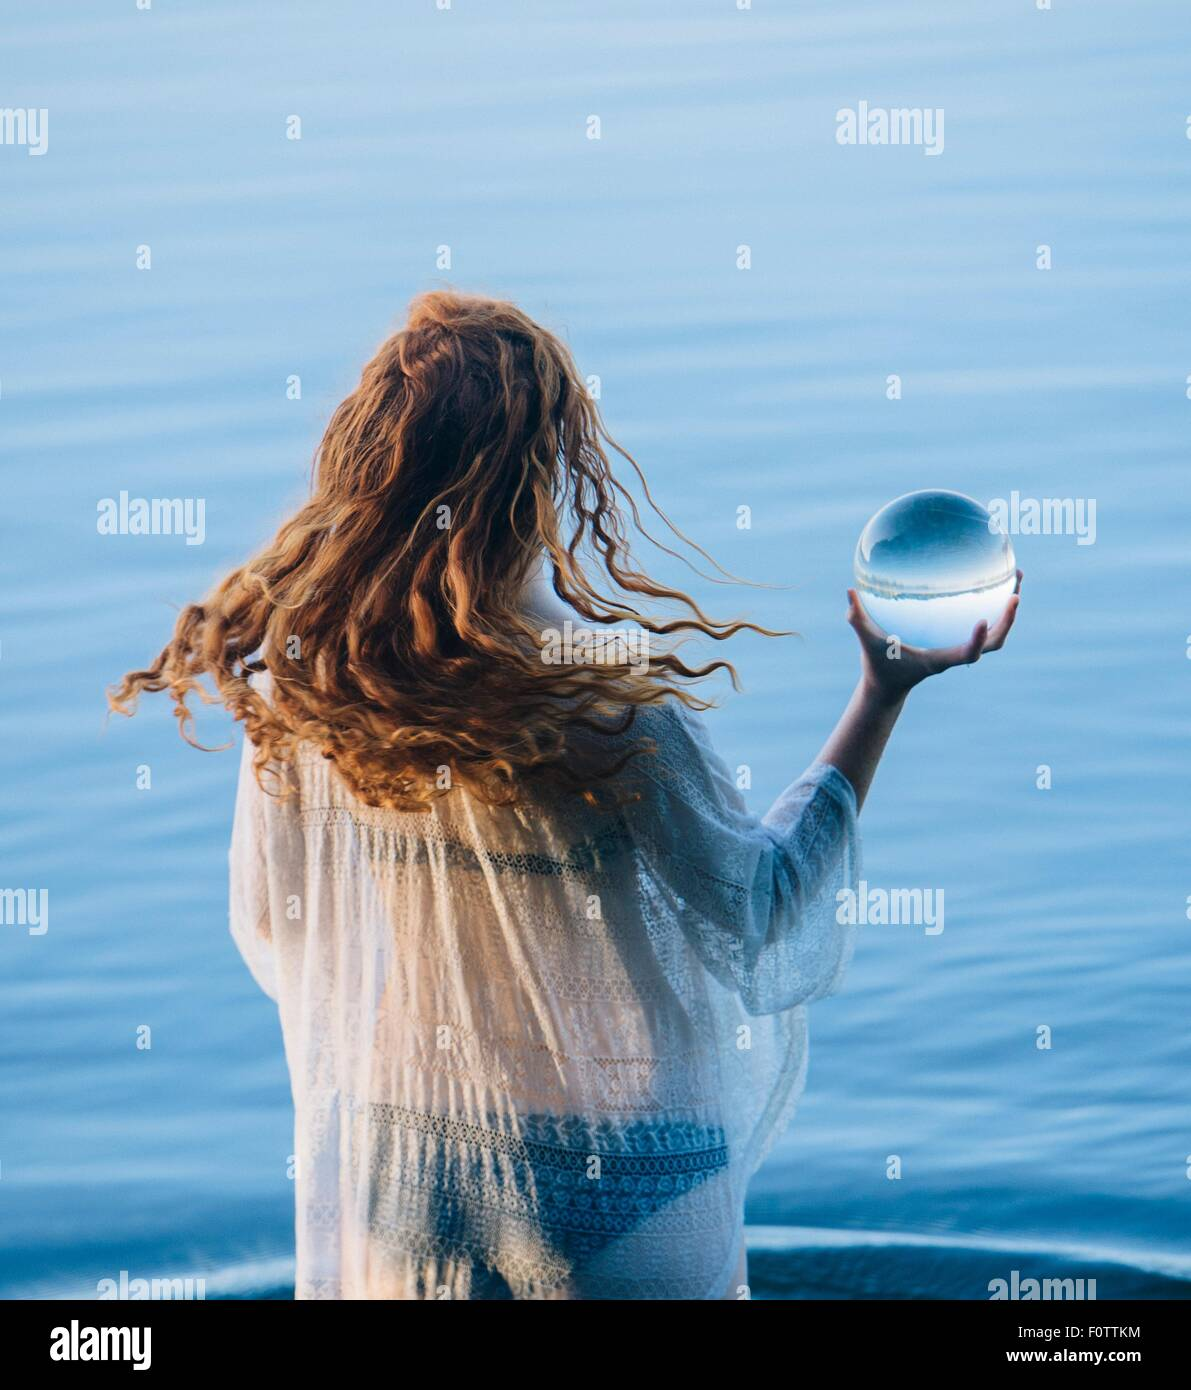 Rear view of young woman with long red hair standing in lake holding crystal ball - Stock Image